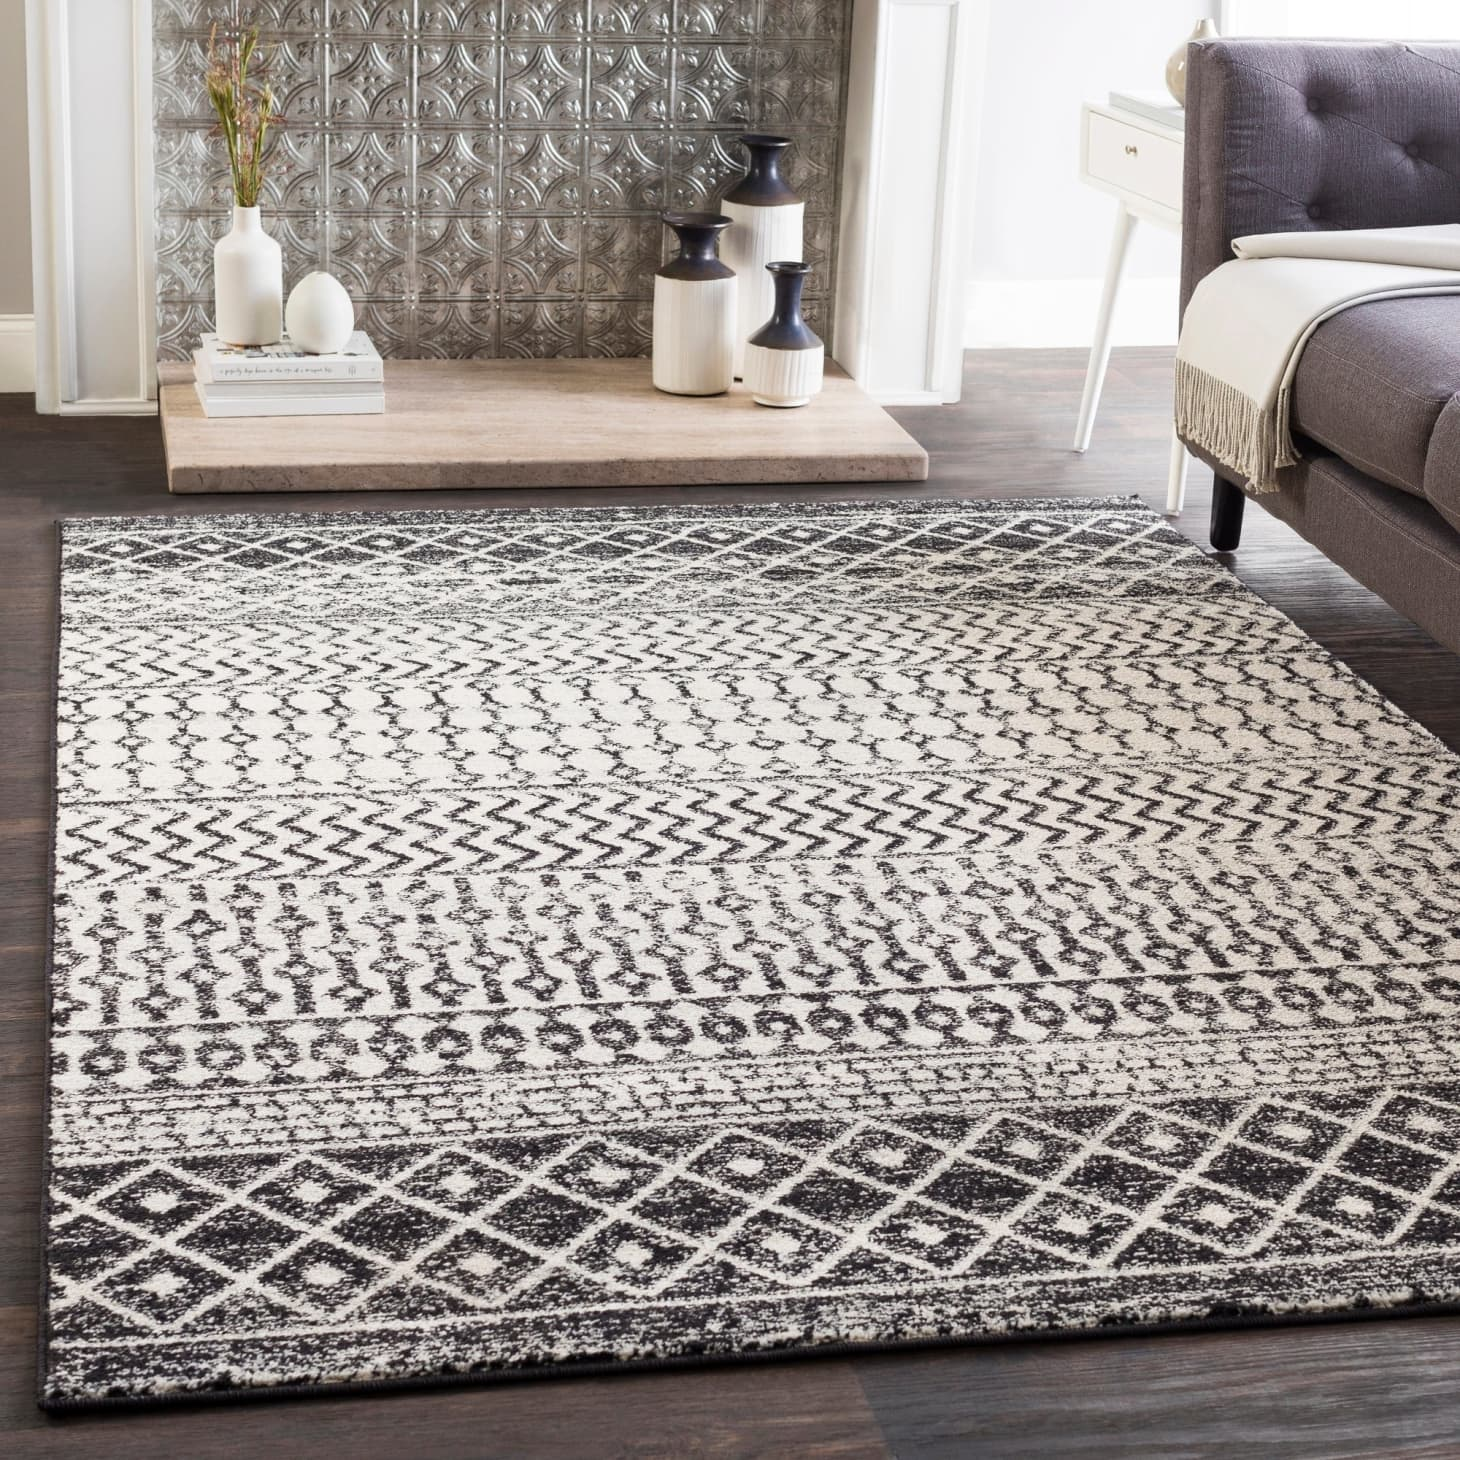 Best Rugs Under 300 July 4th 2019 Home Deals